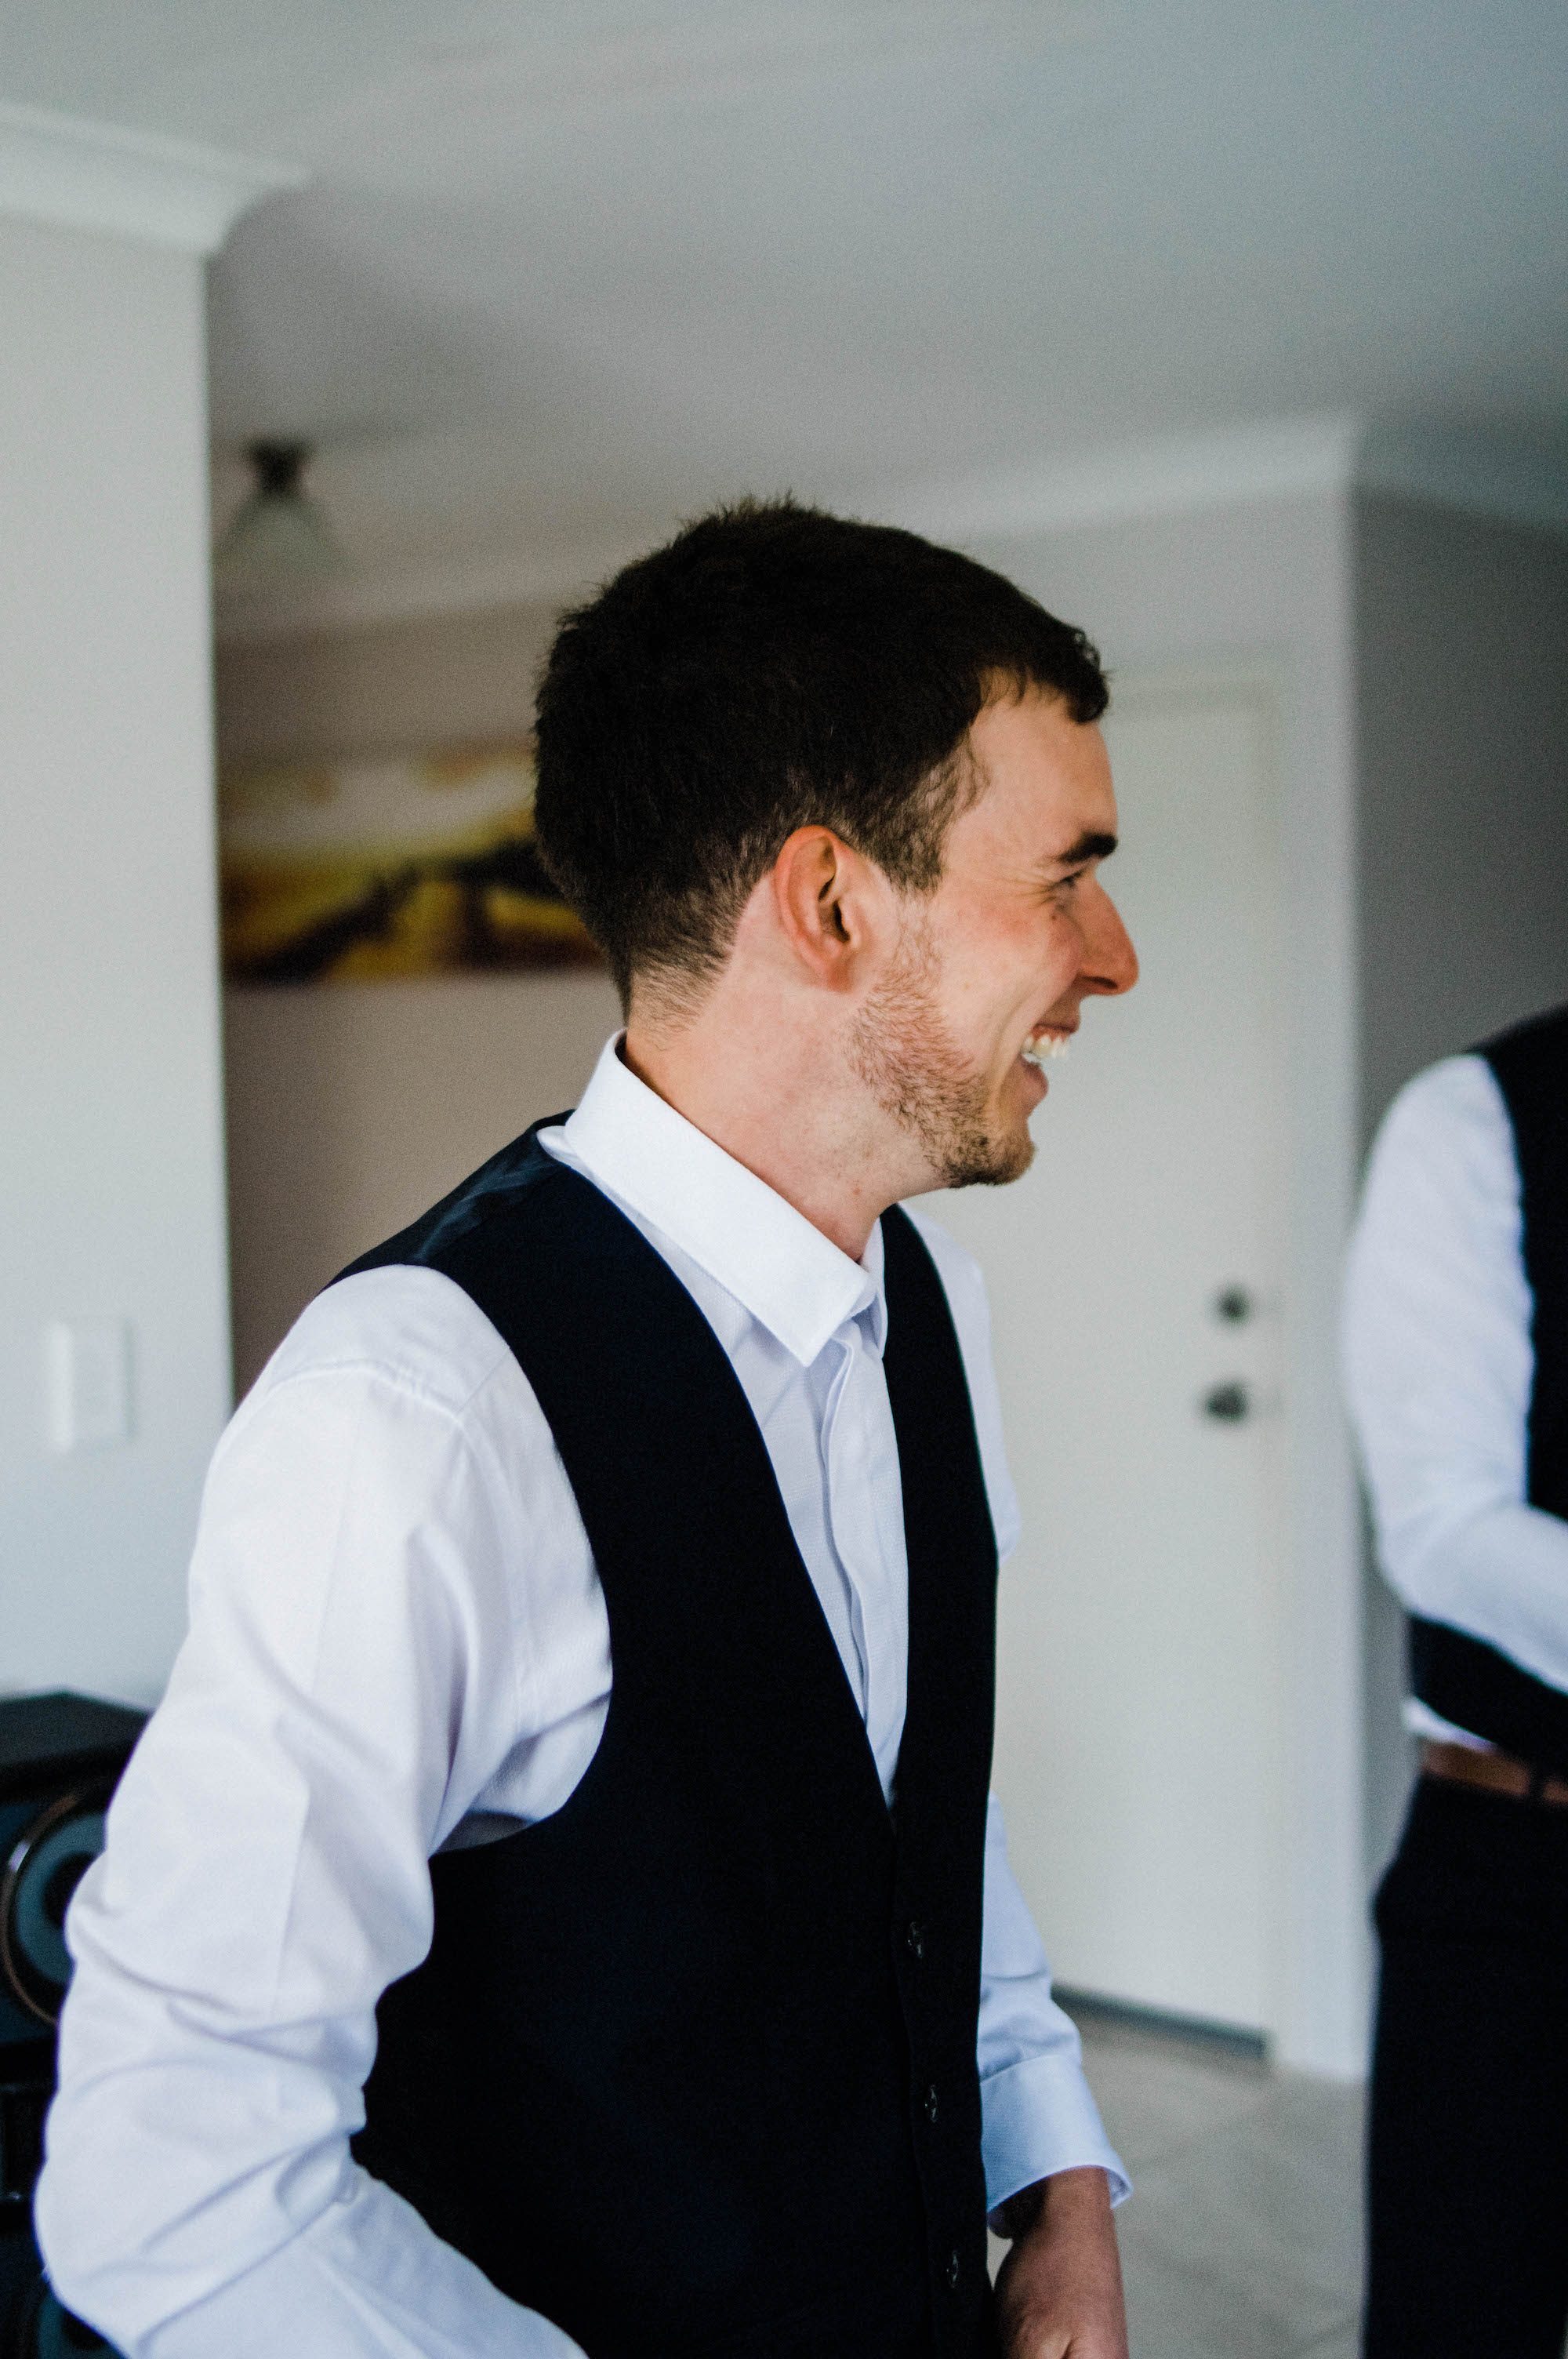 A photo of the groom smiling while getting ready for his Perth wedding.